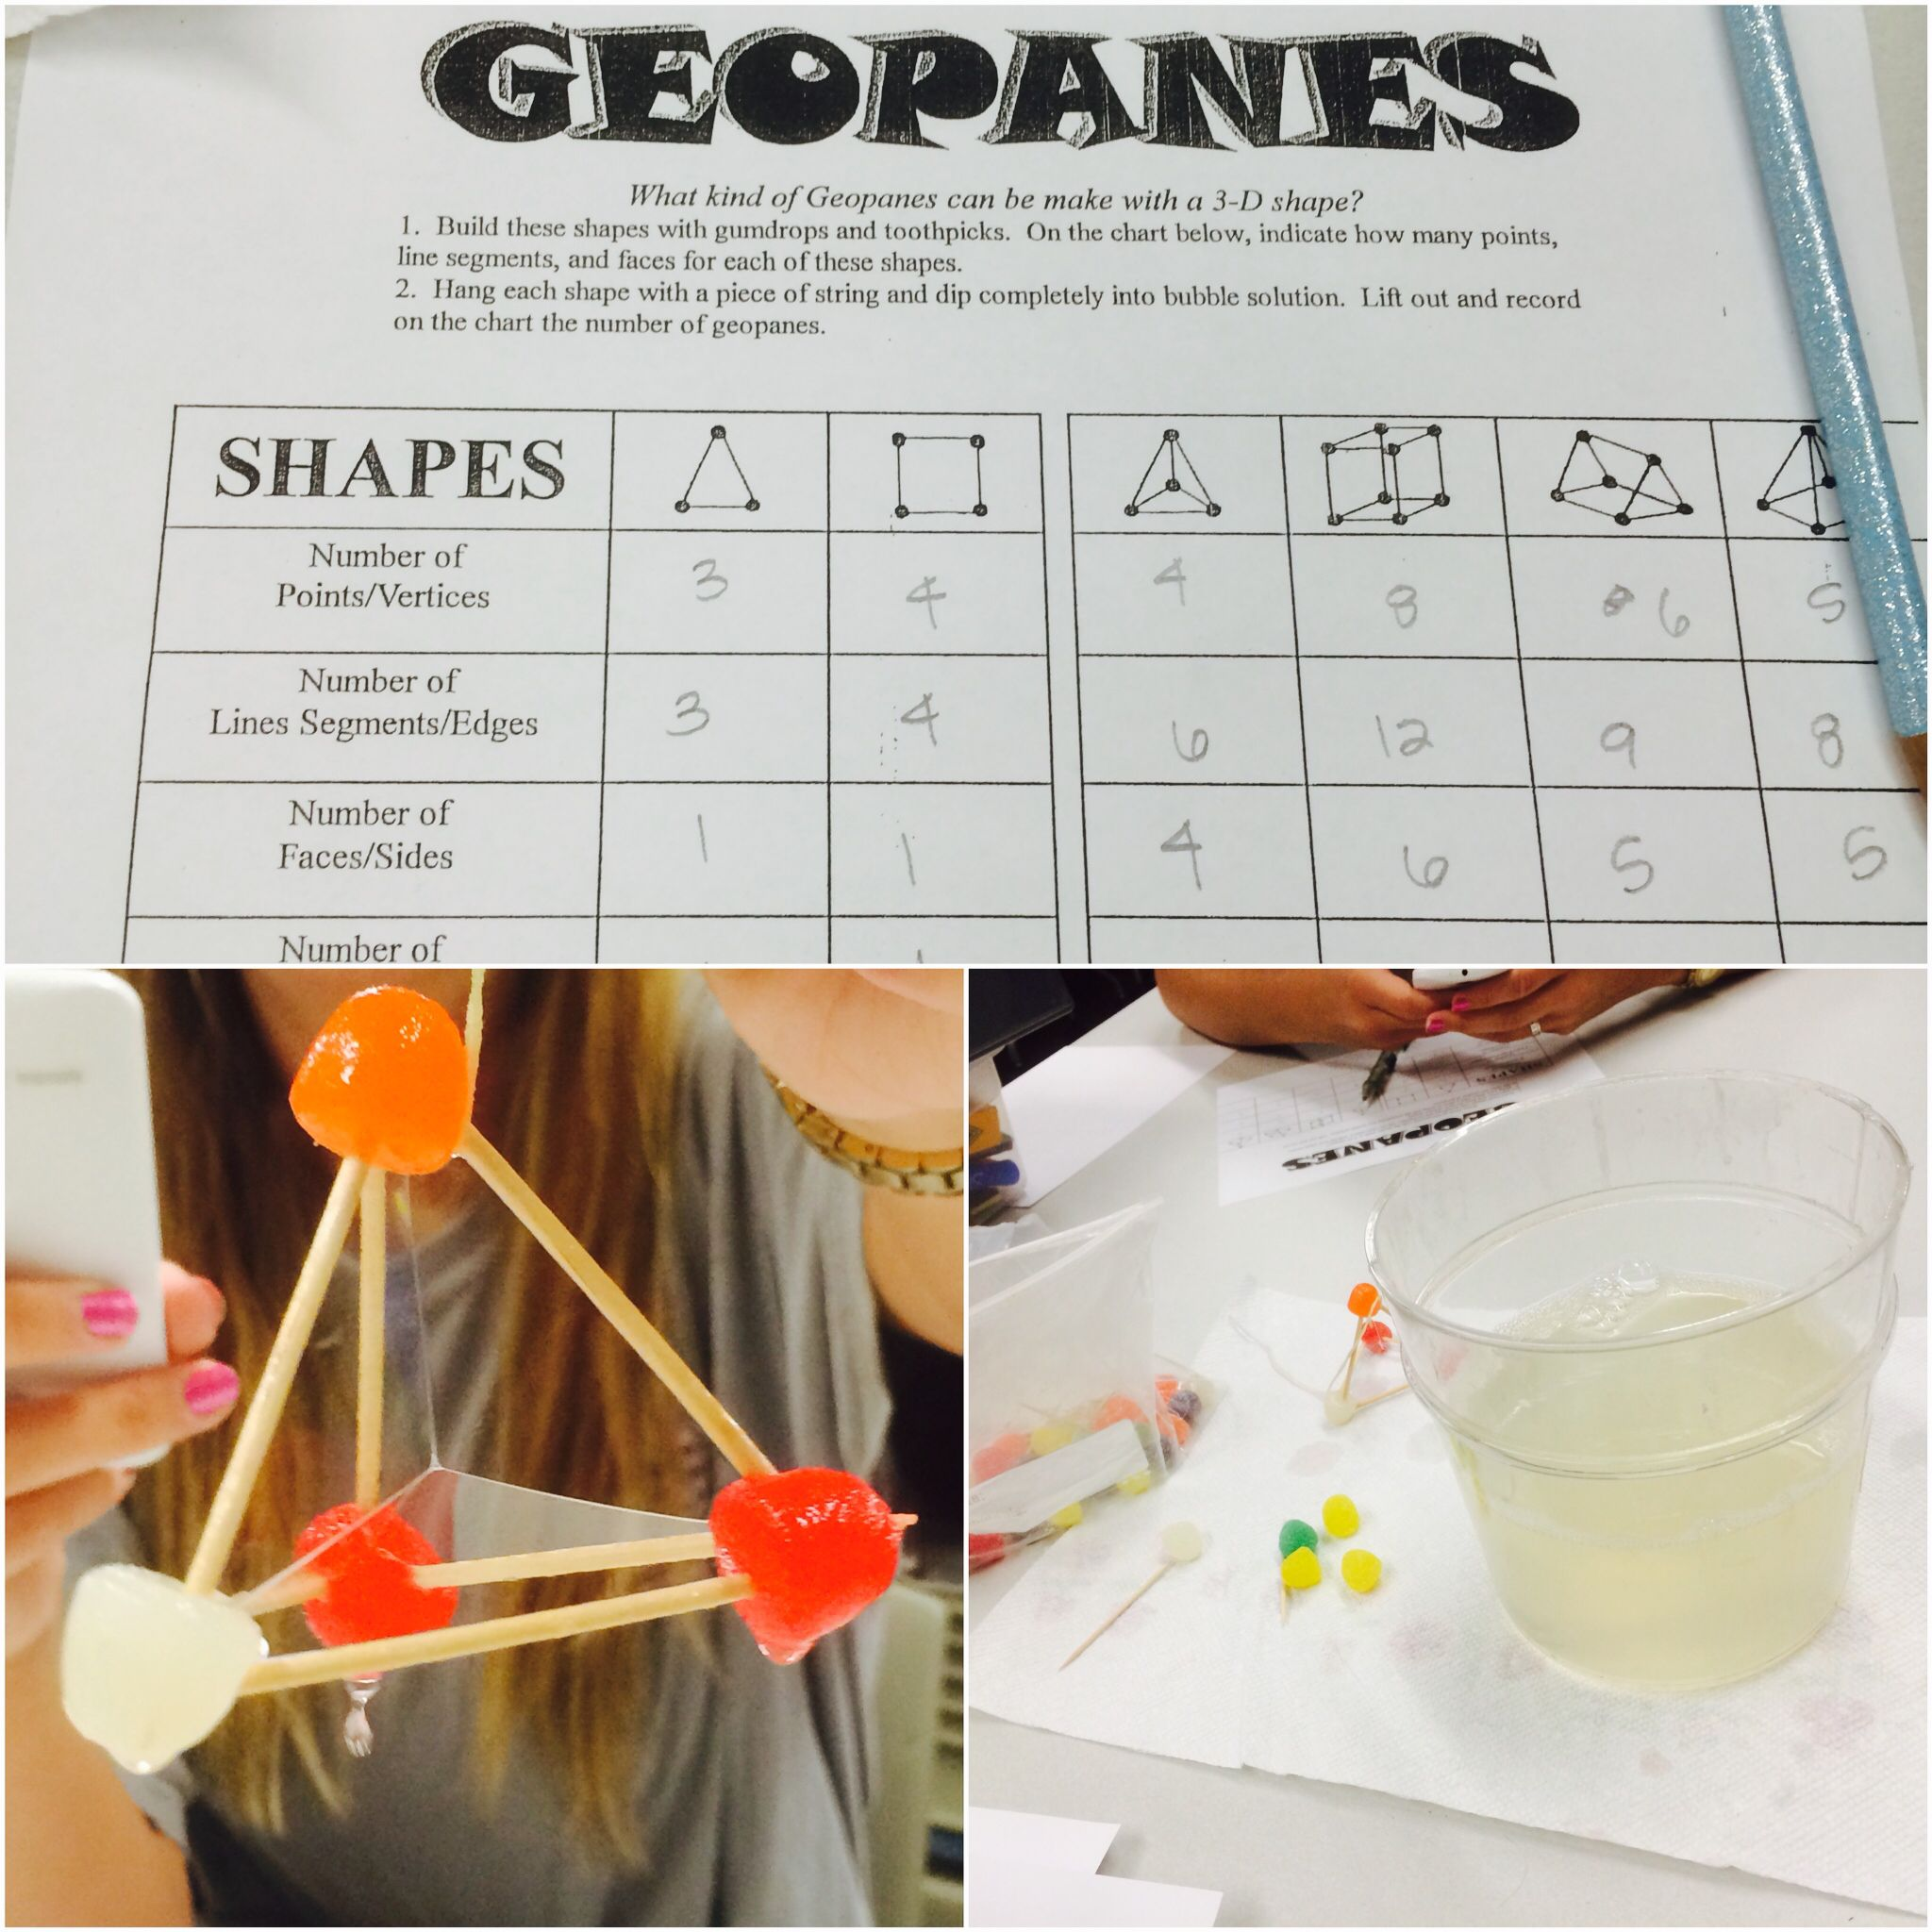 Geopanes Activity Gumdrops Toothpicks Bubble Solution And This Worksheet Form 2d Shapes And